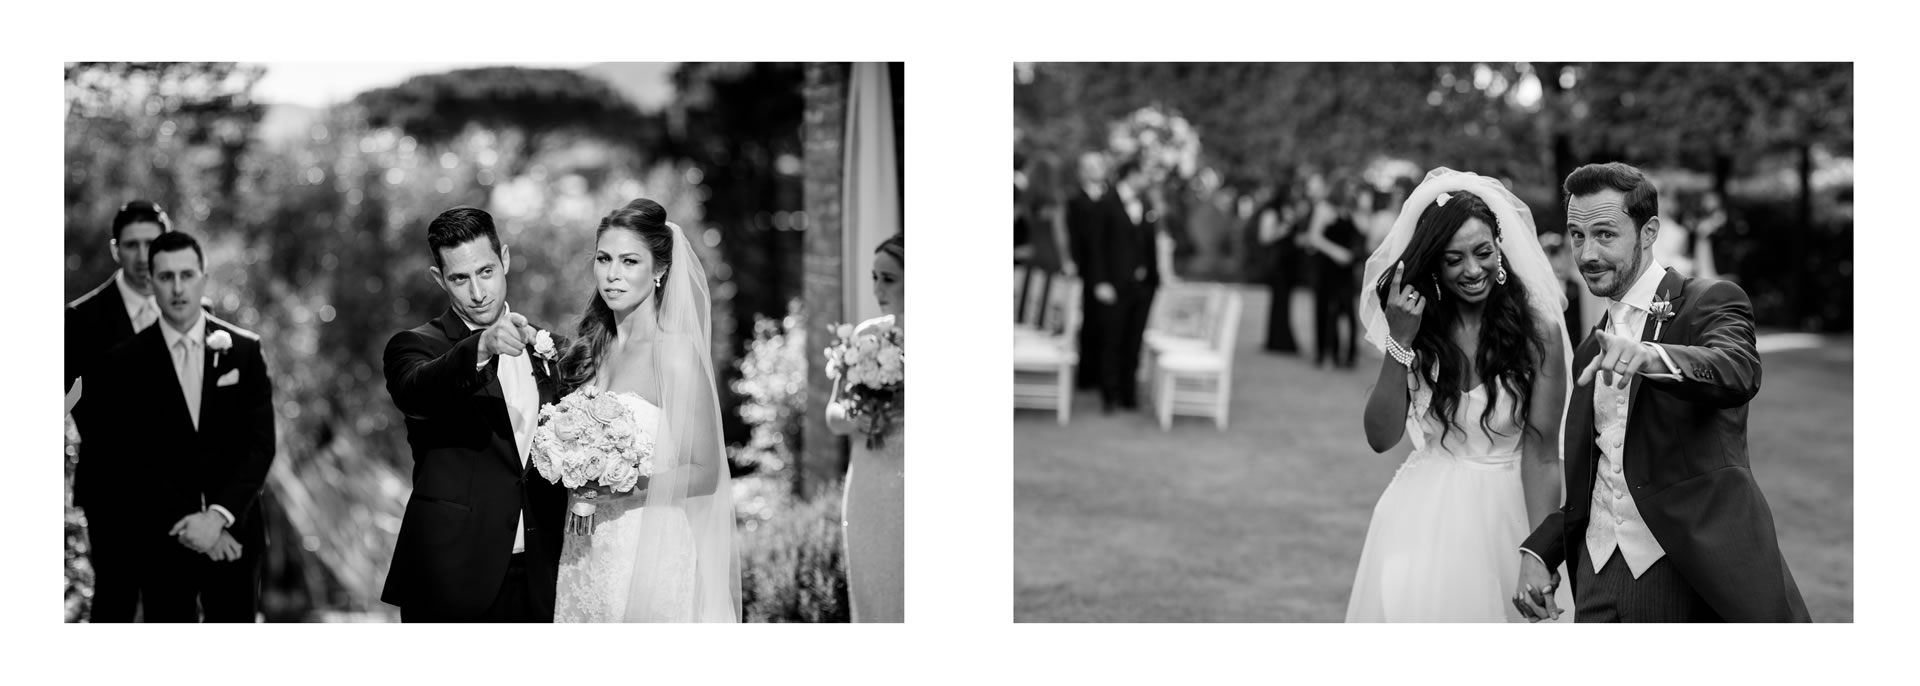 - 24 :: BEST OF 2018 WEDDING: A COLLECTION TO TELL ONE YEAR STORY :: Luxury wedding photography - 23 ::  - 24